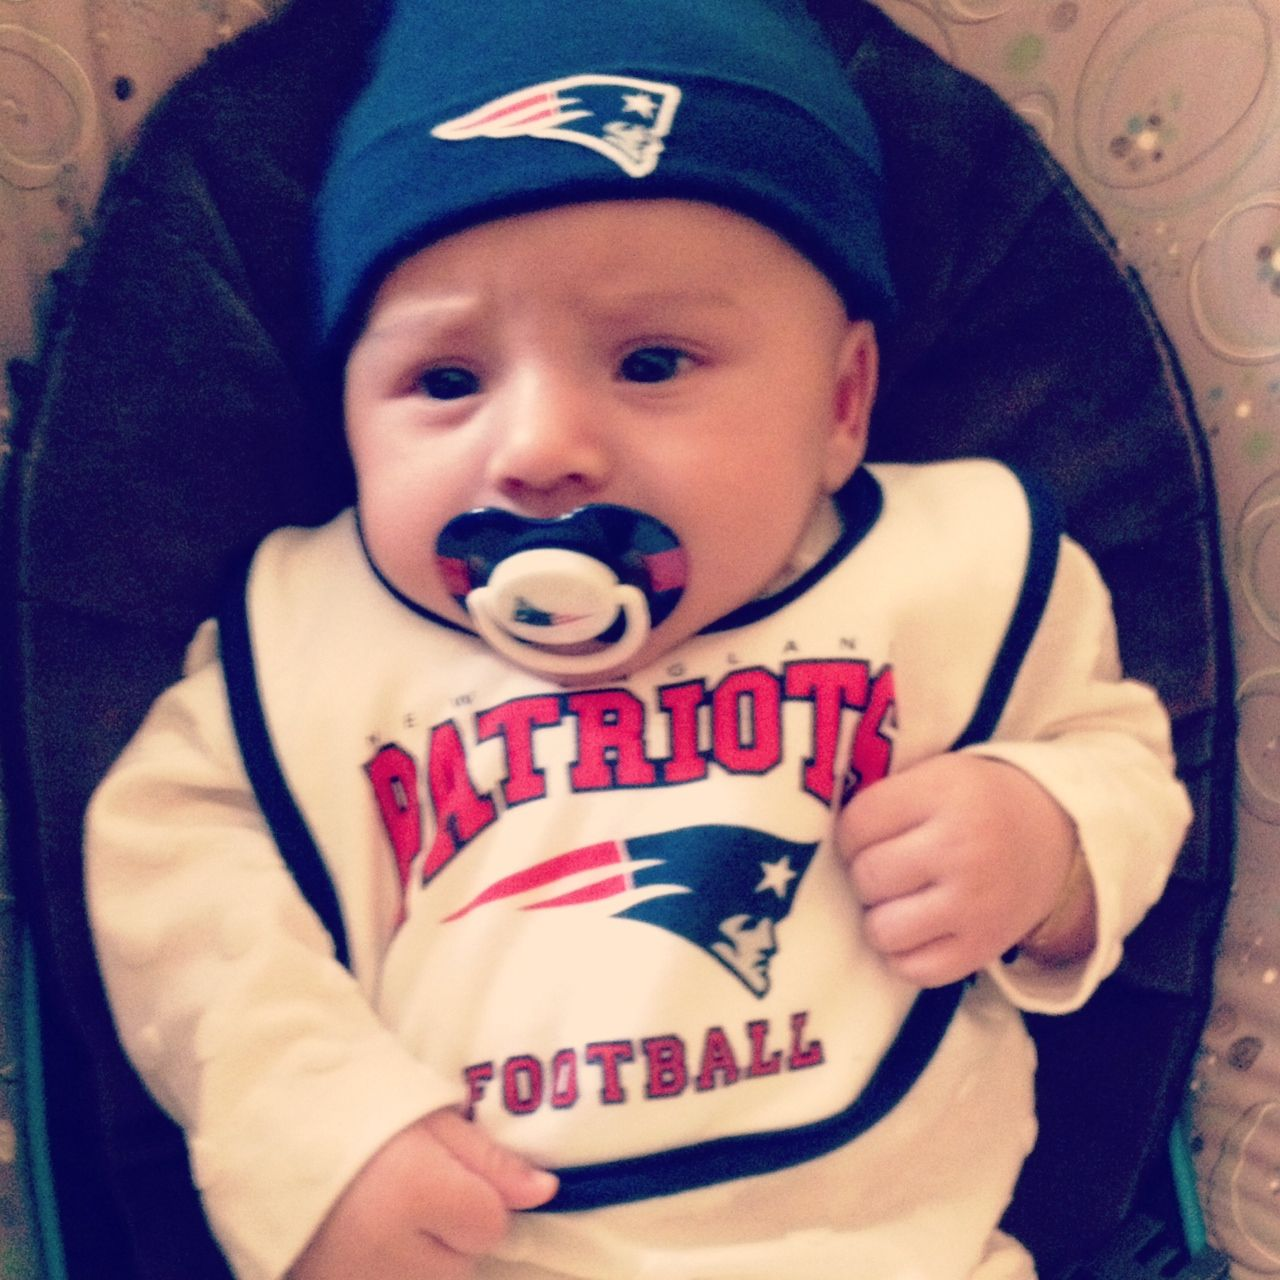 Patriots Football Patriots Football New England Patriots Football Football Mom